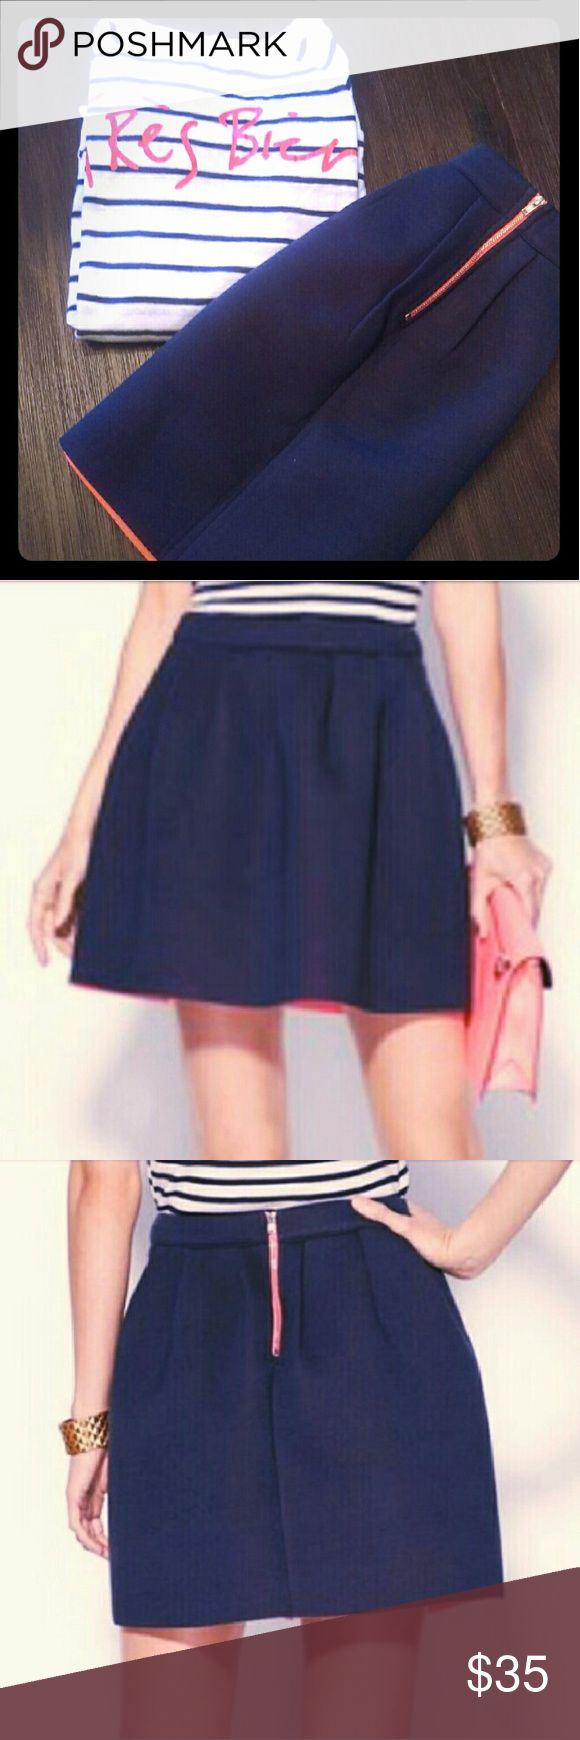 NWT! Pure Sugar Navy Neoprene Skate Skirt - Size M New, navy, coral lined, skater miniskirt! Pair with nautical, striped top for a cute look! Pure Sugar Skirts Circle & Skater